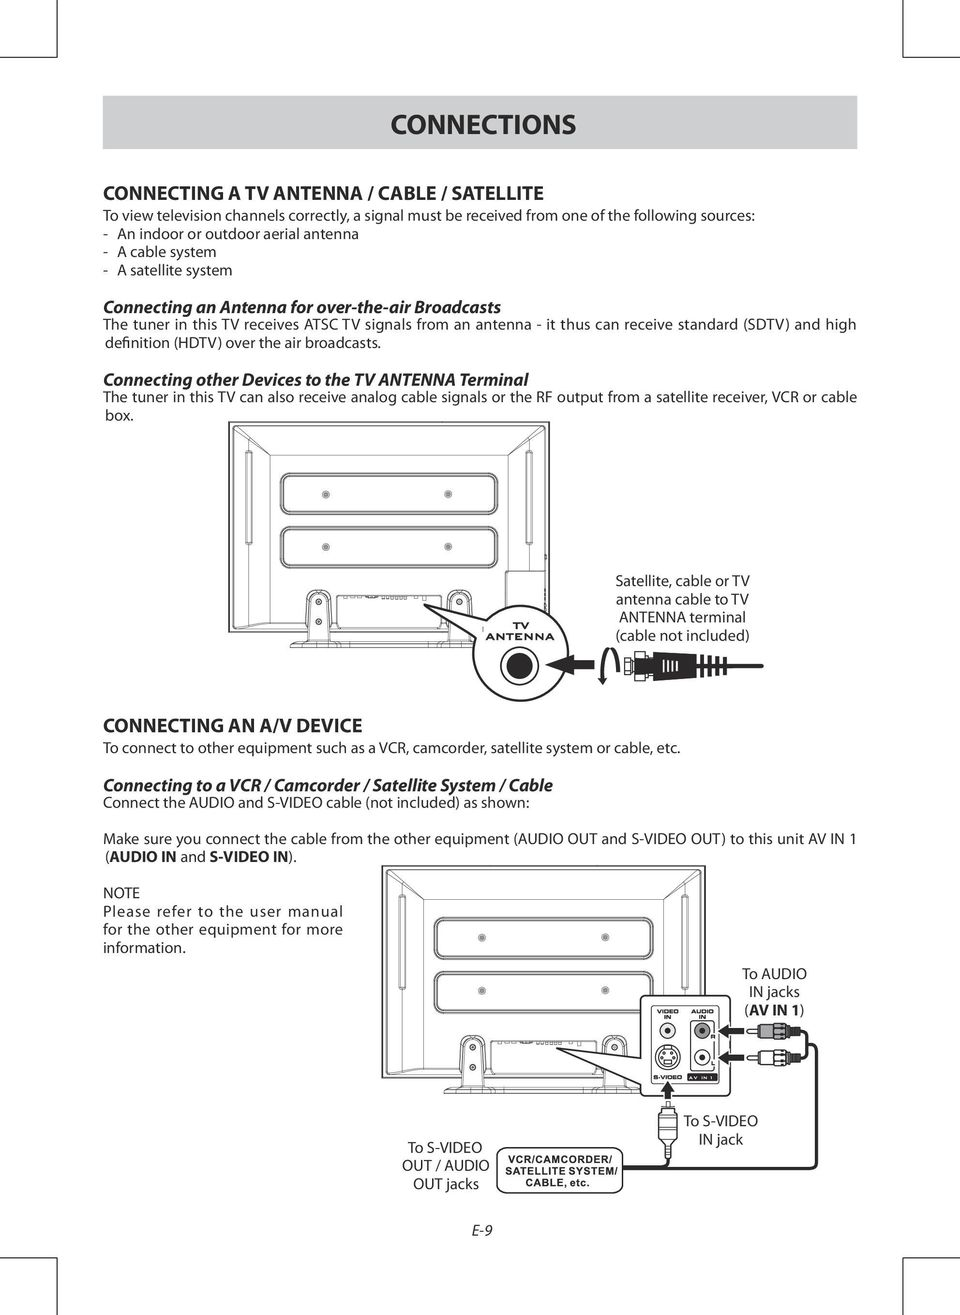 Pdv28420c 42 Plasma Tv Owners Manual Pdf Make Sure You Are Looking At The Correct Schematic Definition Hdtv Over Air Broadcasts